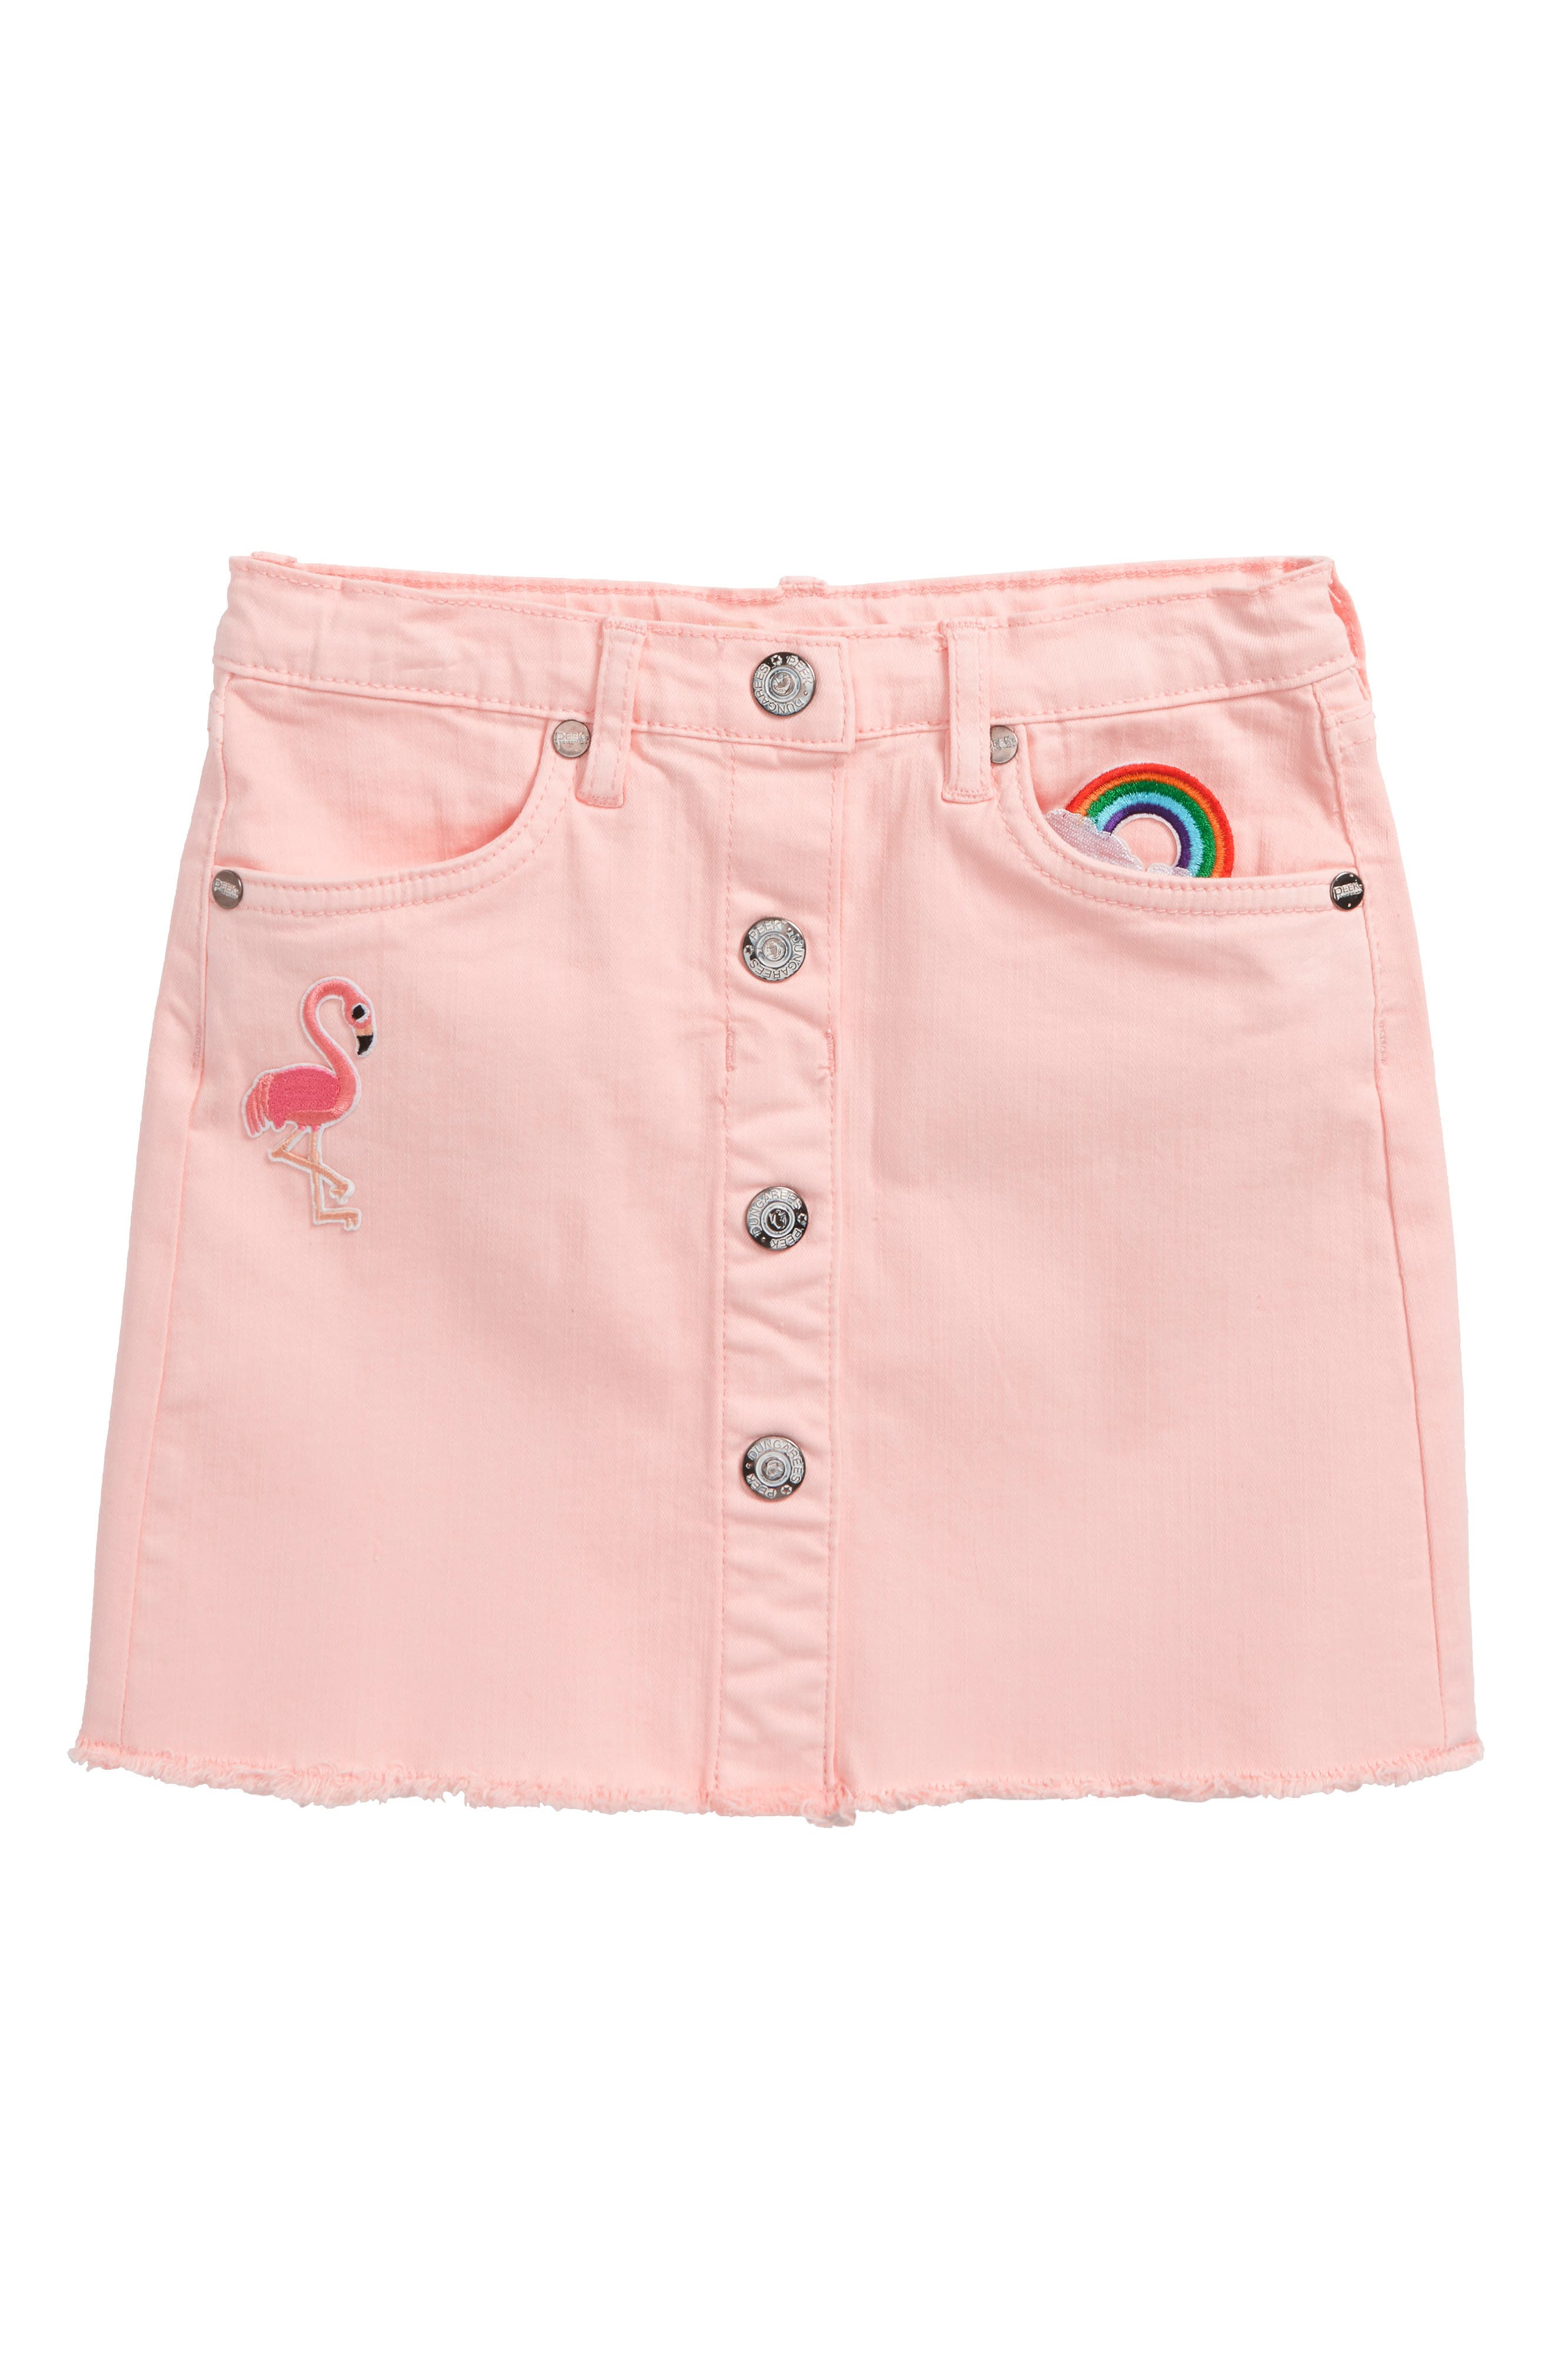 Flamingo Denim Skirt,                         Main,                         color,